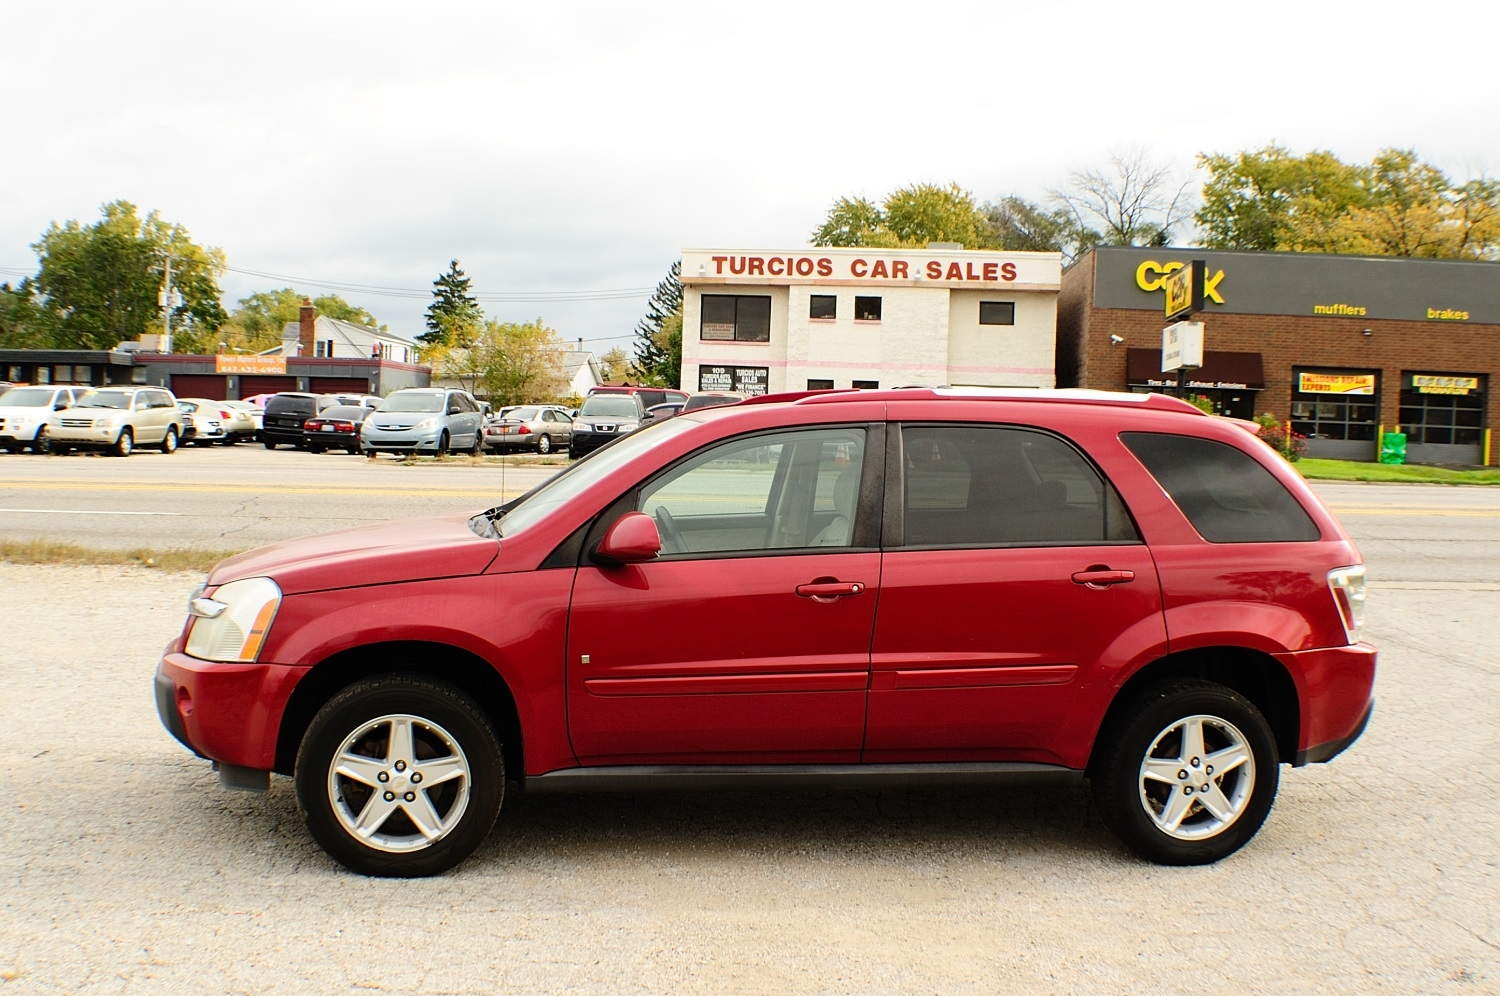 2006 Chevrolet Equinox Red 4x2 SUV used car sale Antioch Zion Waukegan Lake County Illinois